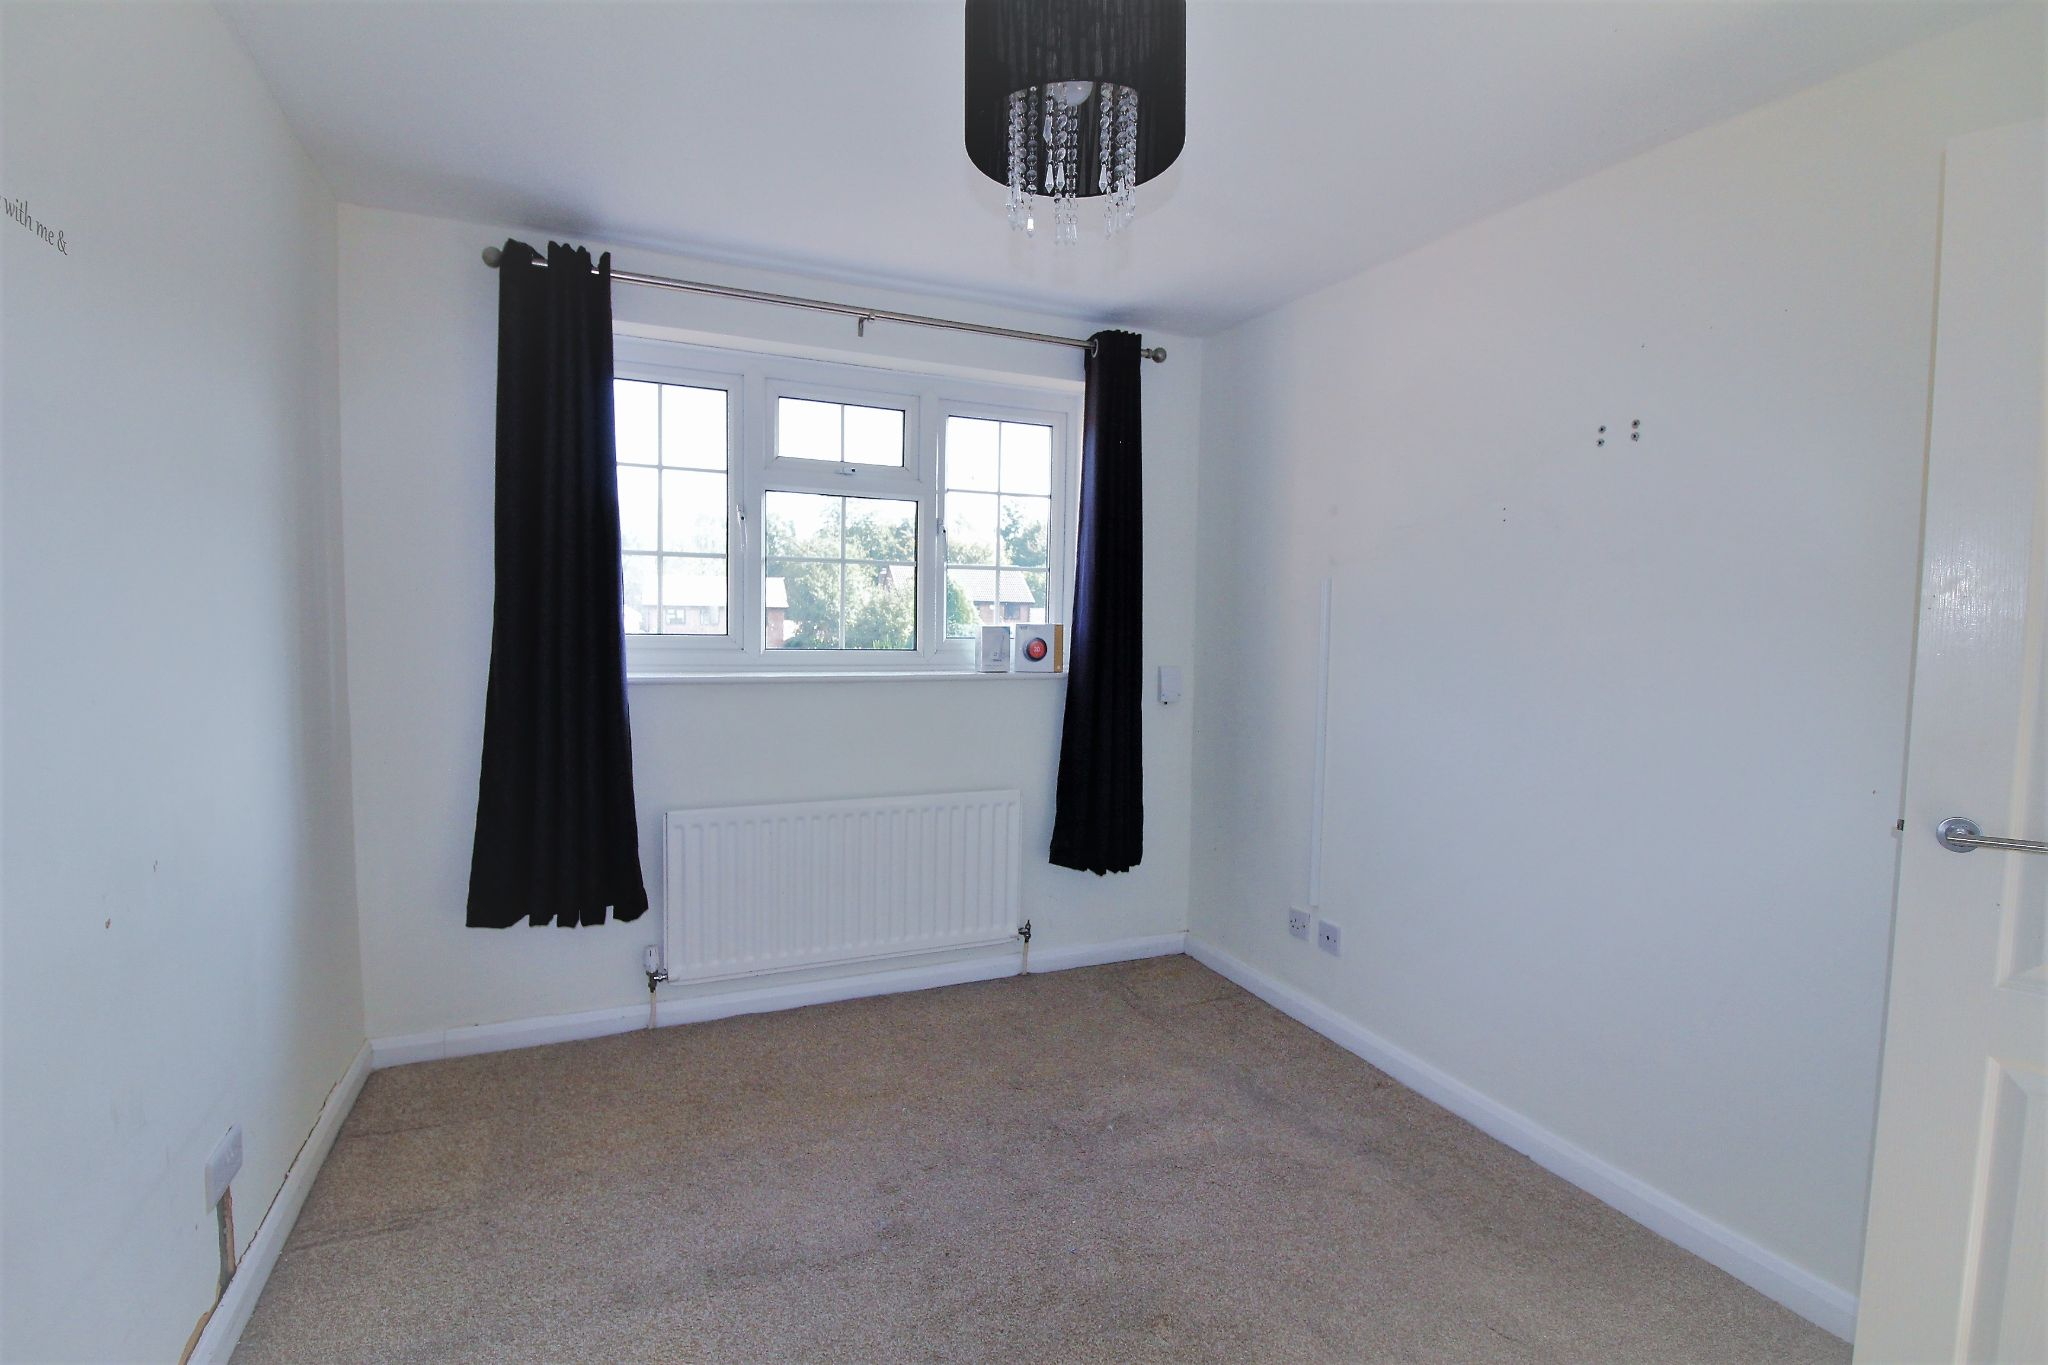 3 bedroom semi-detached house Let Agreed in Solihull - Photograph 7.